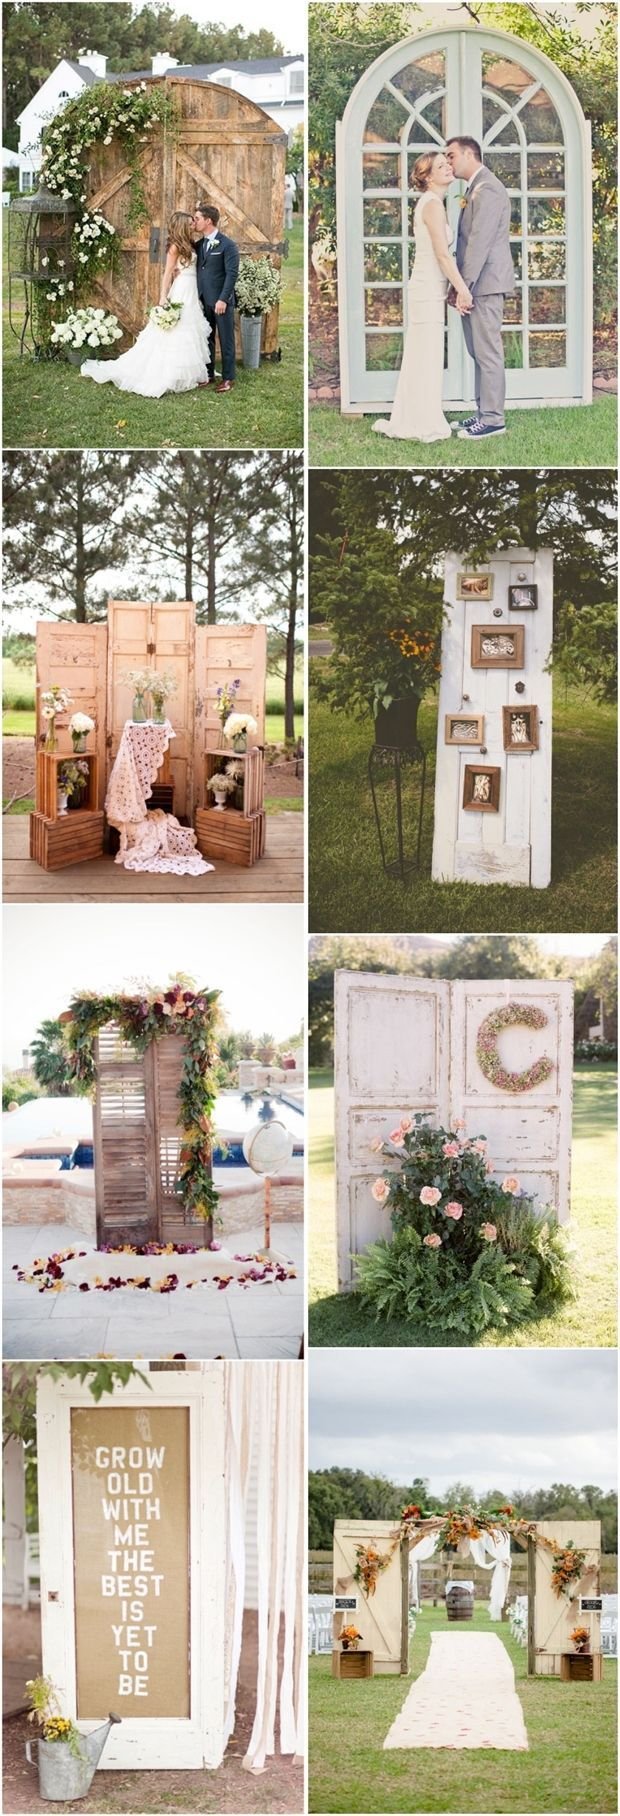 rustic old door wedding ideas- country outdoor wedding decors - Deer Pearl Flowers